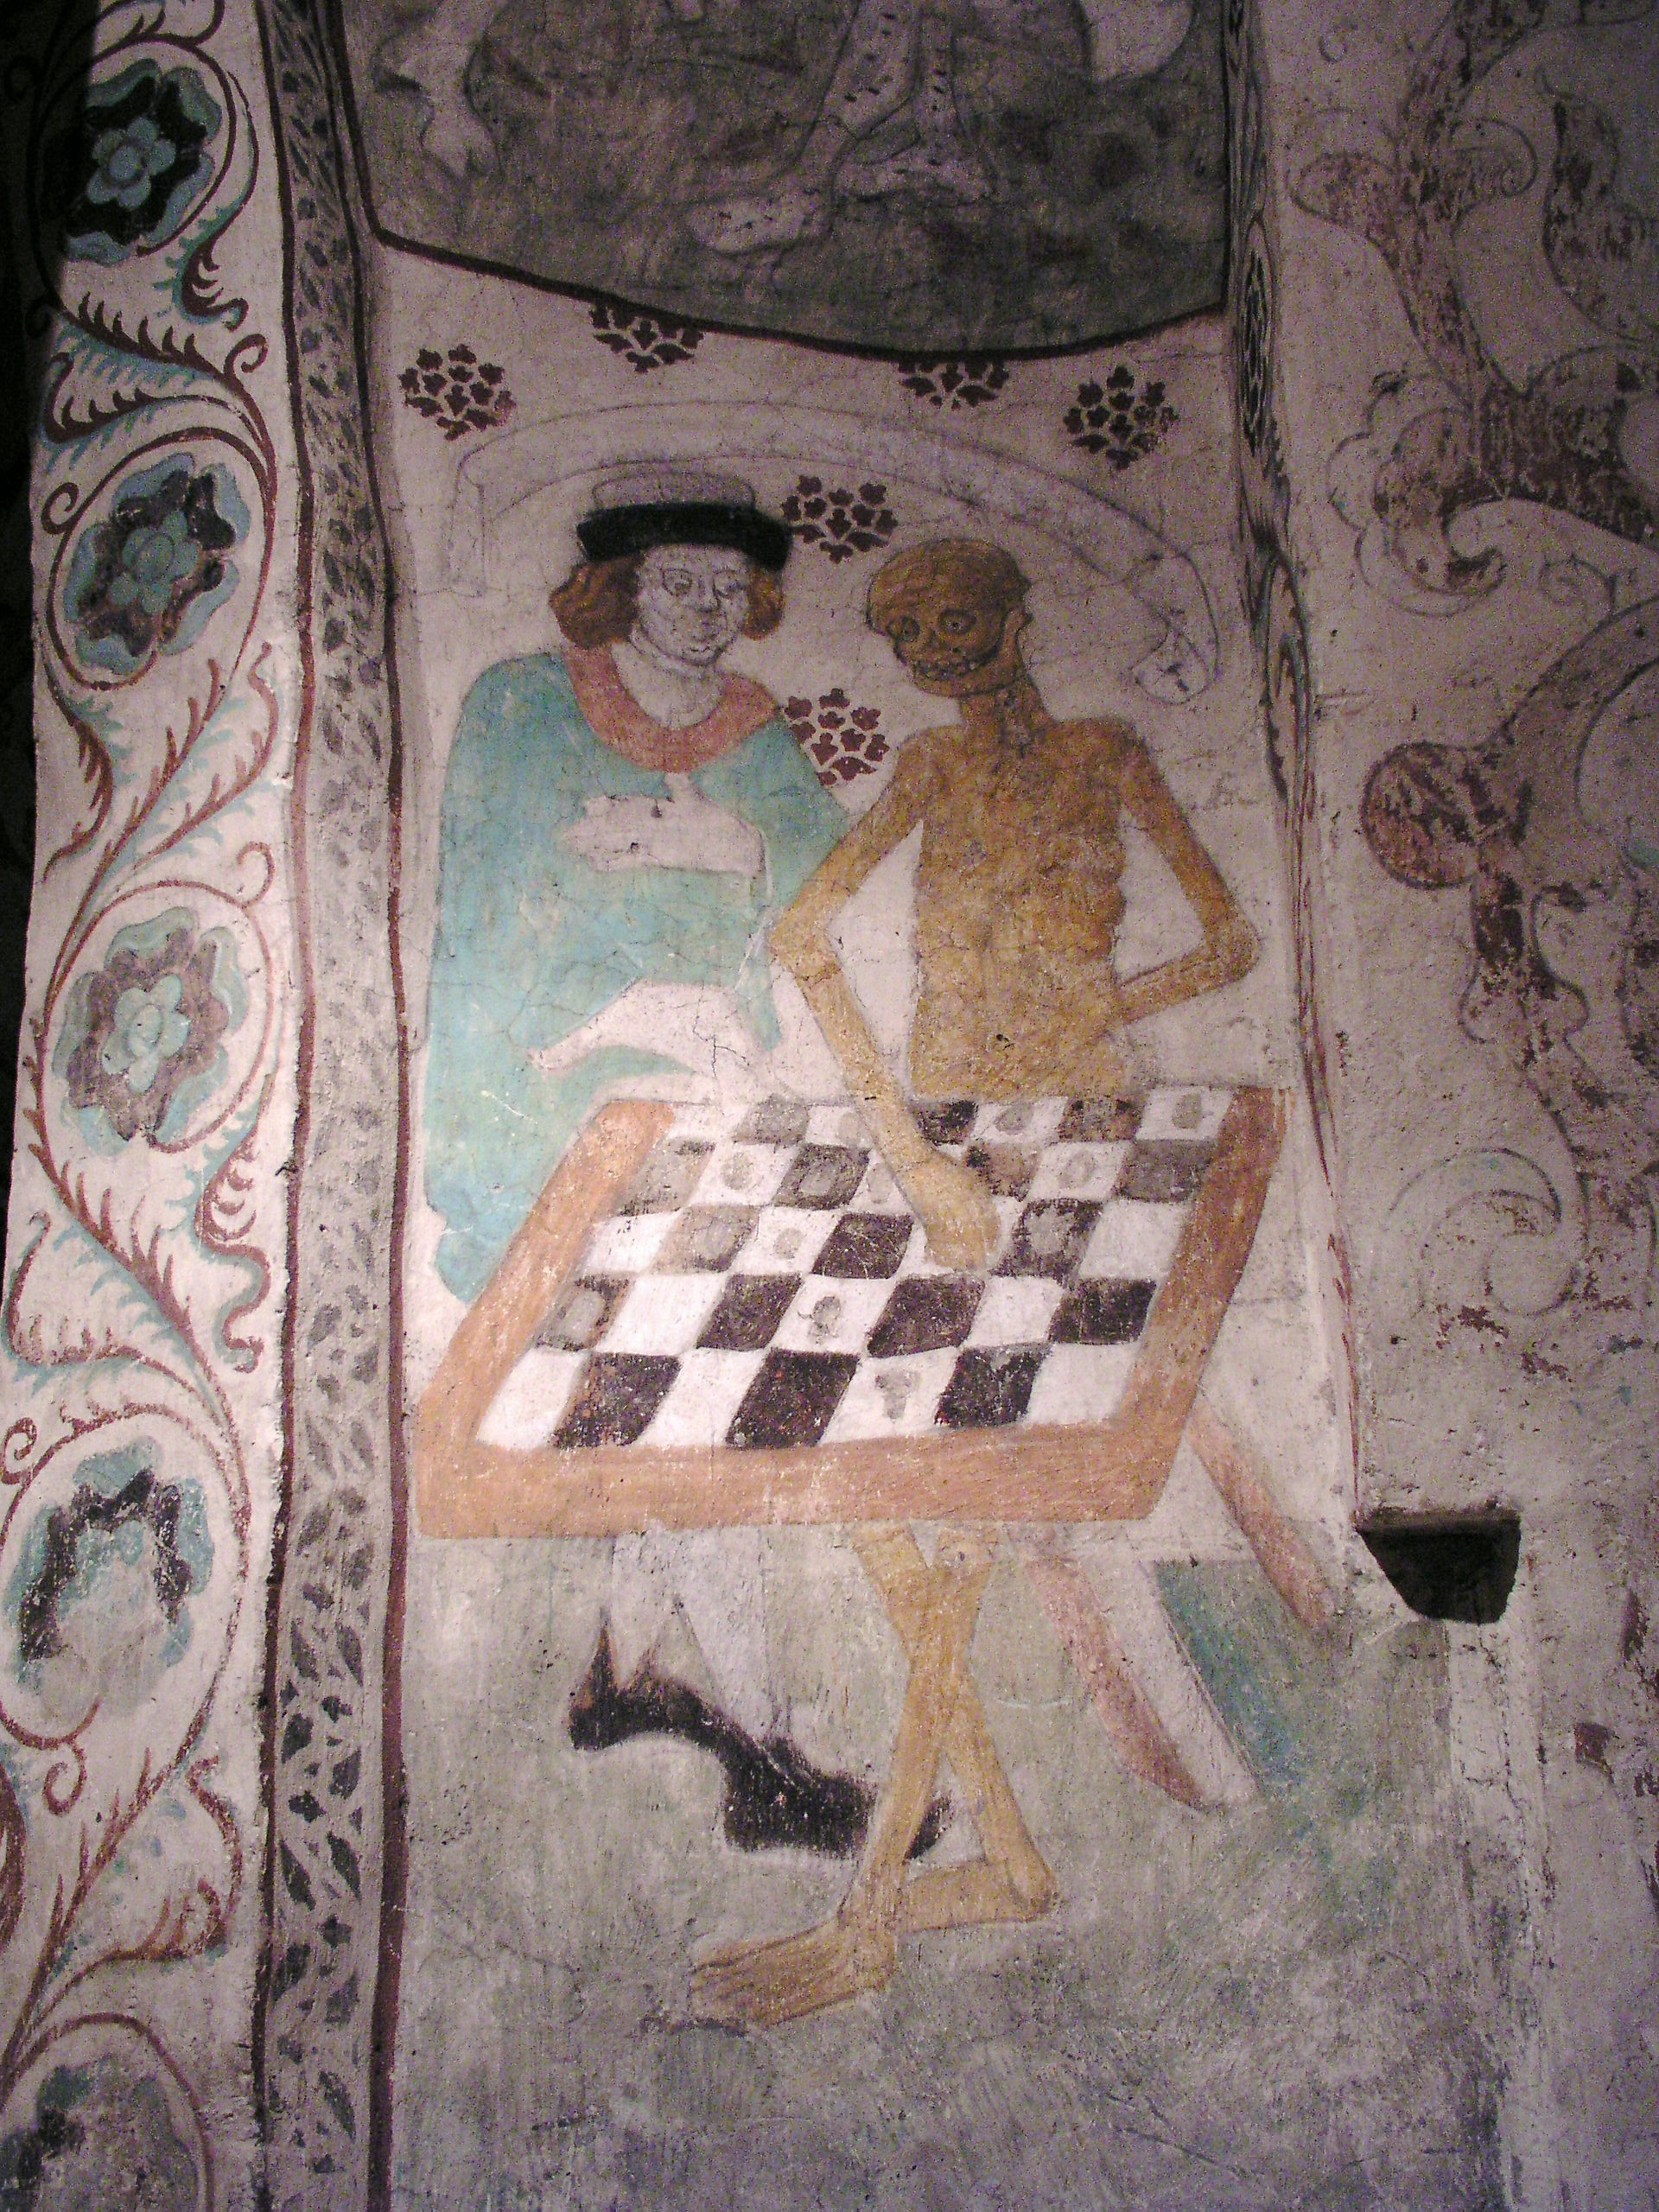 http://upload.wikimedia.org/wikipedia/commons/0/0b/Taby_kyrka_Death_playing_chess.jpg